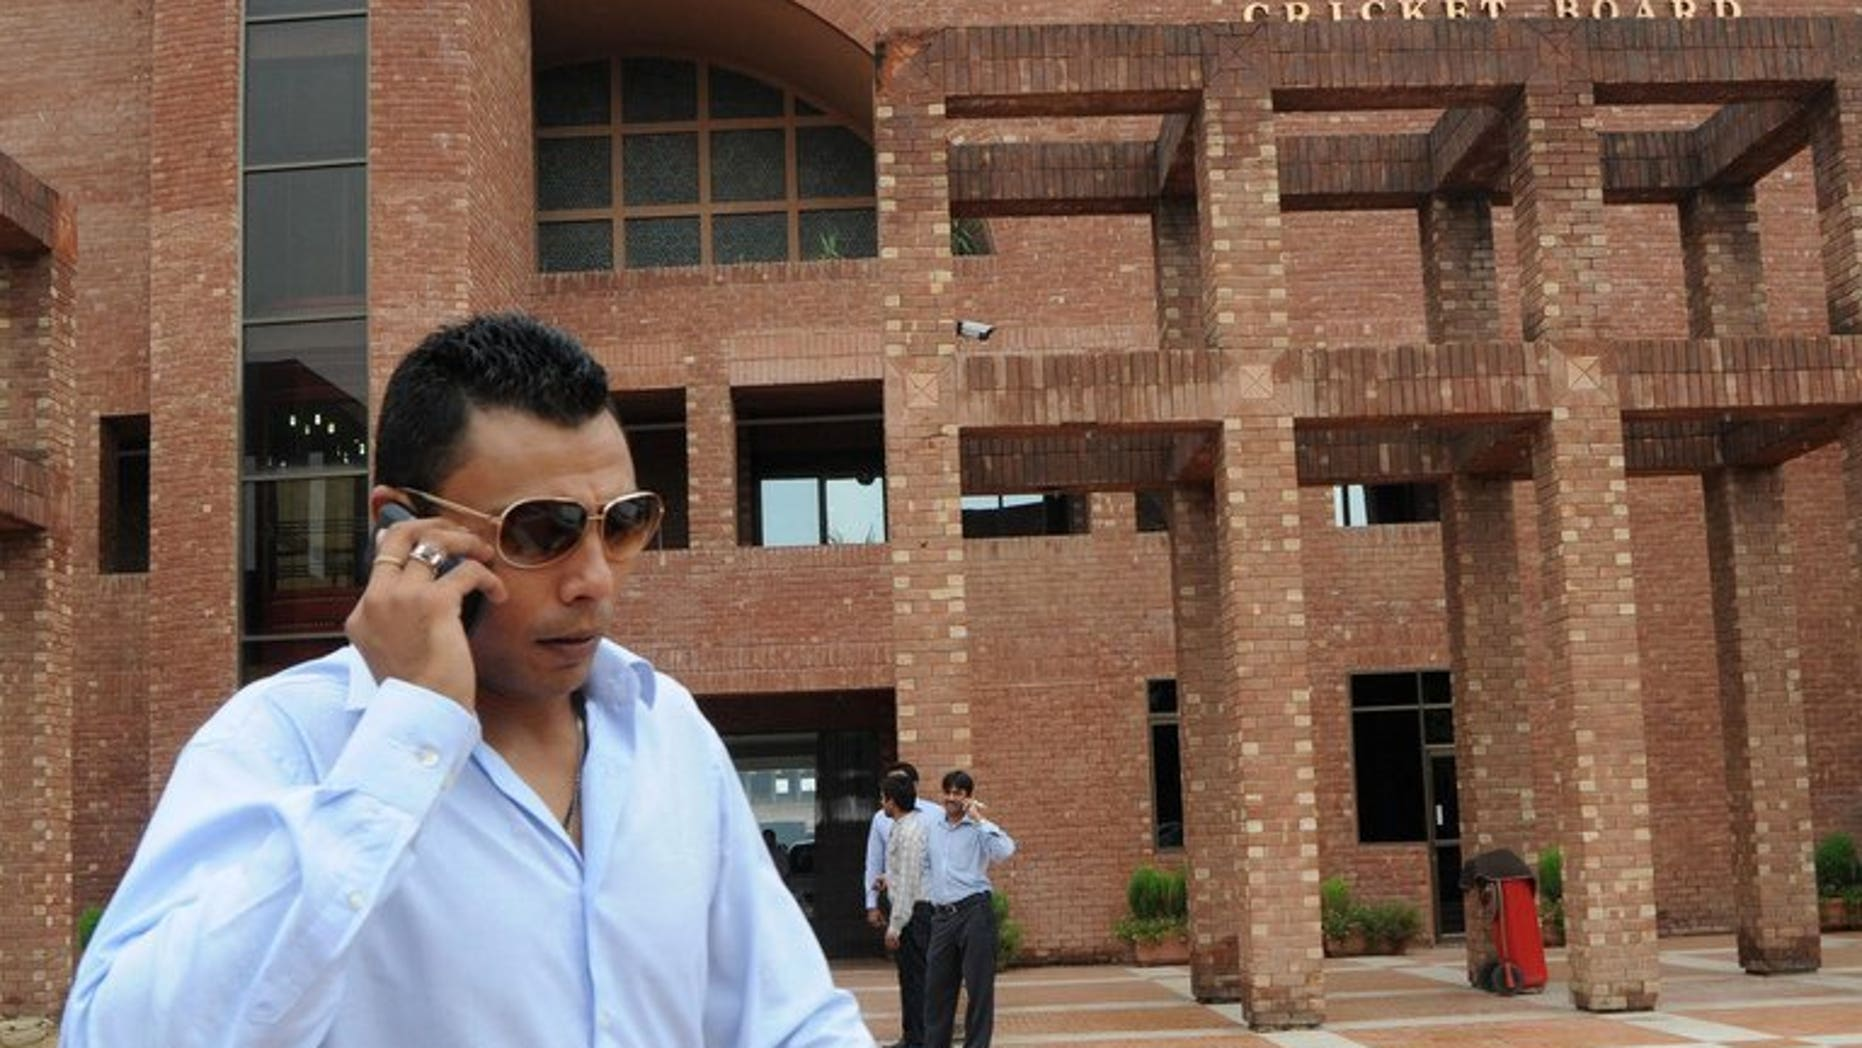 """Danish Kaneria leaves the Gaddafi stadium in Lahore on August 15, 2011. Kaneria was urged to """"come clean"""" after his lifetime ban from cricket remained in place Tuesday when the England and Wales Cricket Board rejected his appeal at a hearing in London."""